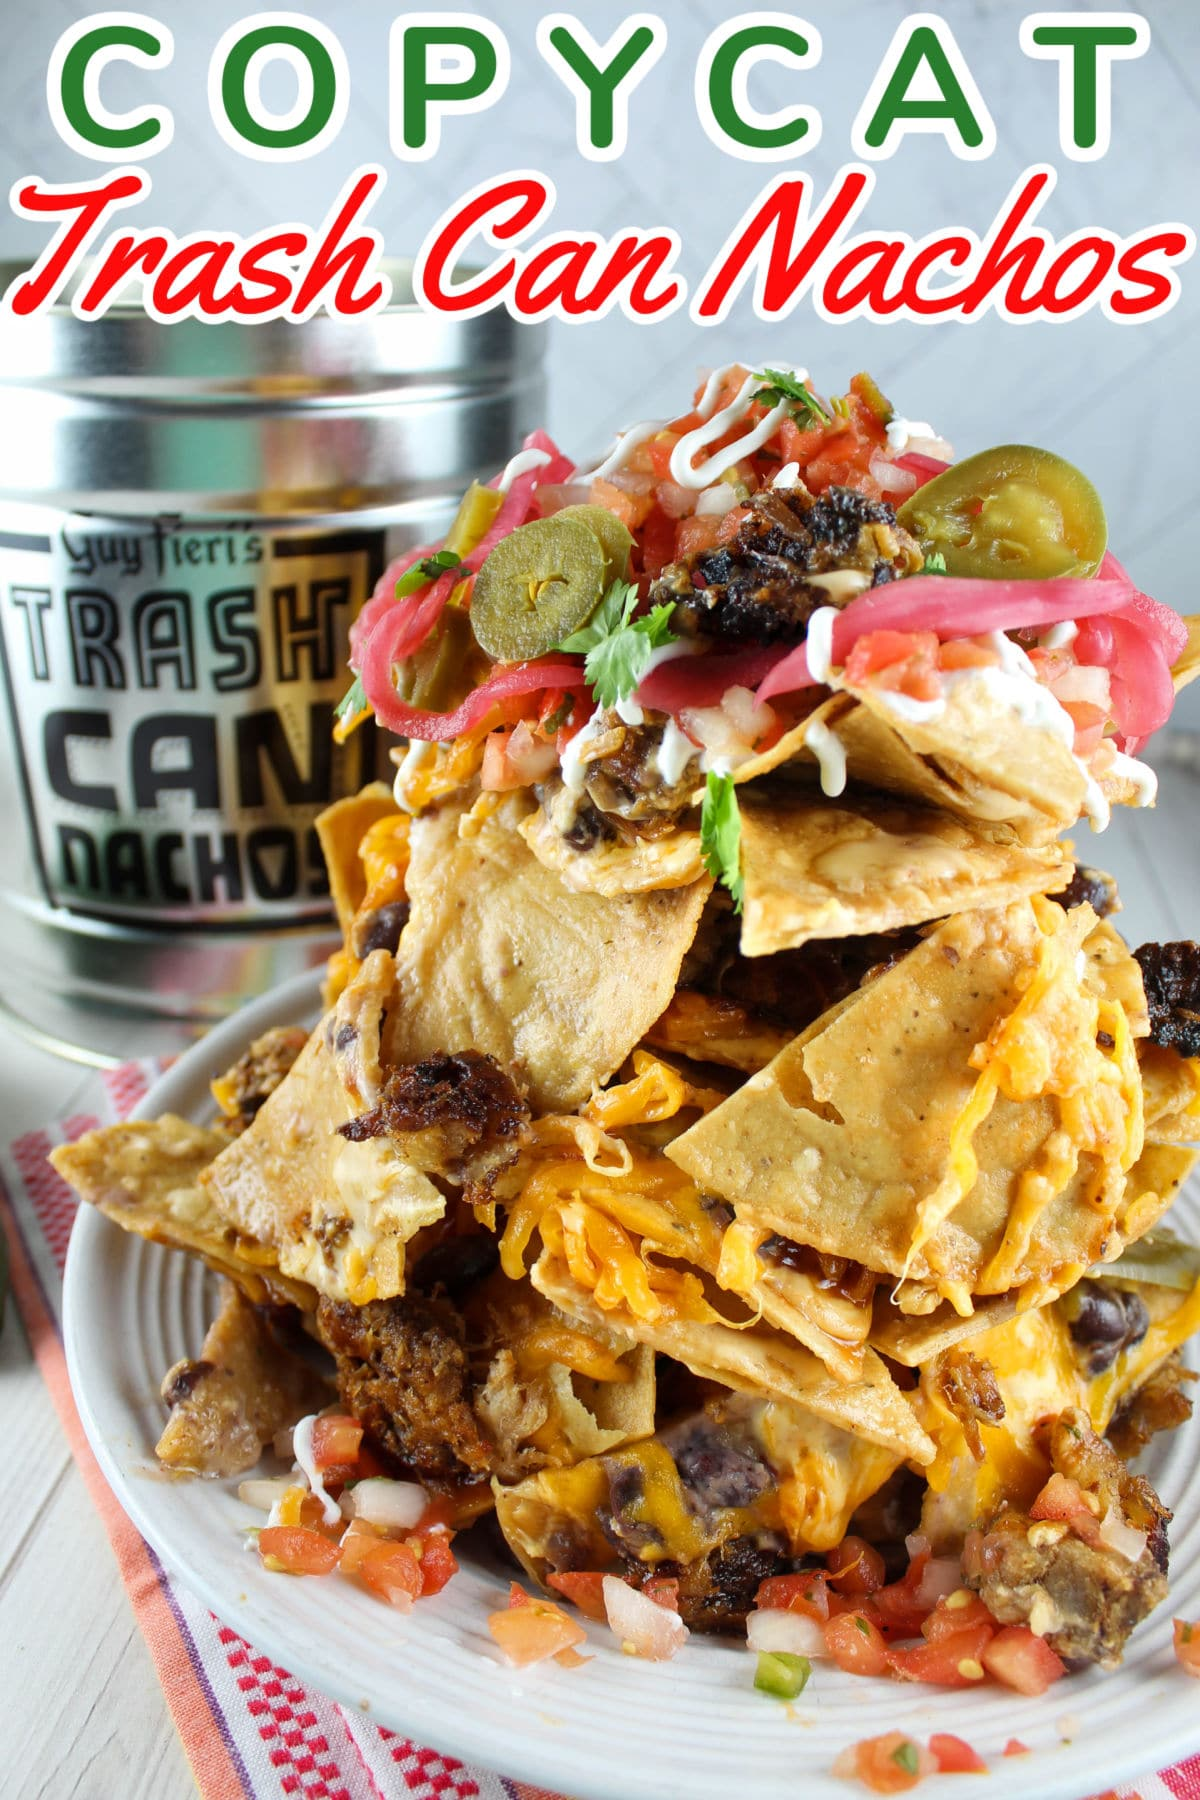 Guy Fieri's Trash Can Nachos are legendary and I made them at home - so simple and really delicious - all the layers are perfect! The key is all in the layering - which gives you the perfect cheese to chip ratio!  via @foodhussy